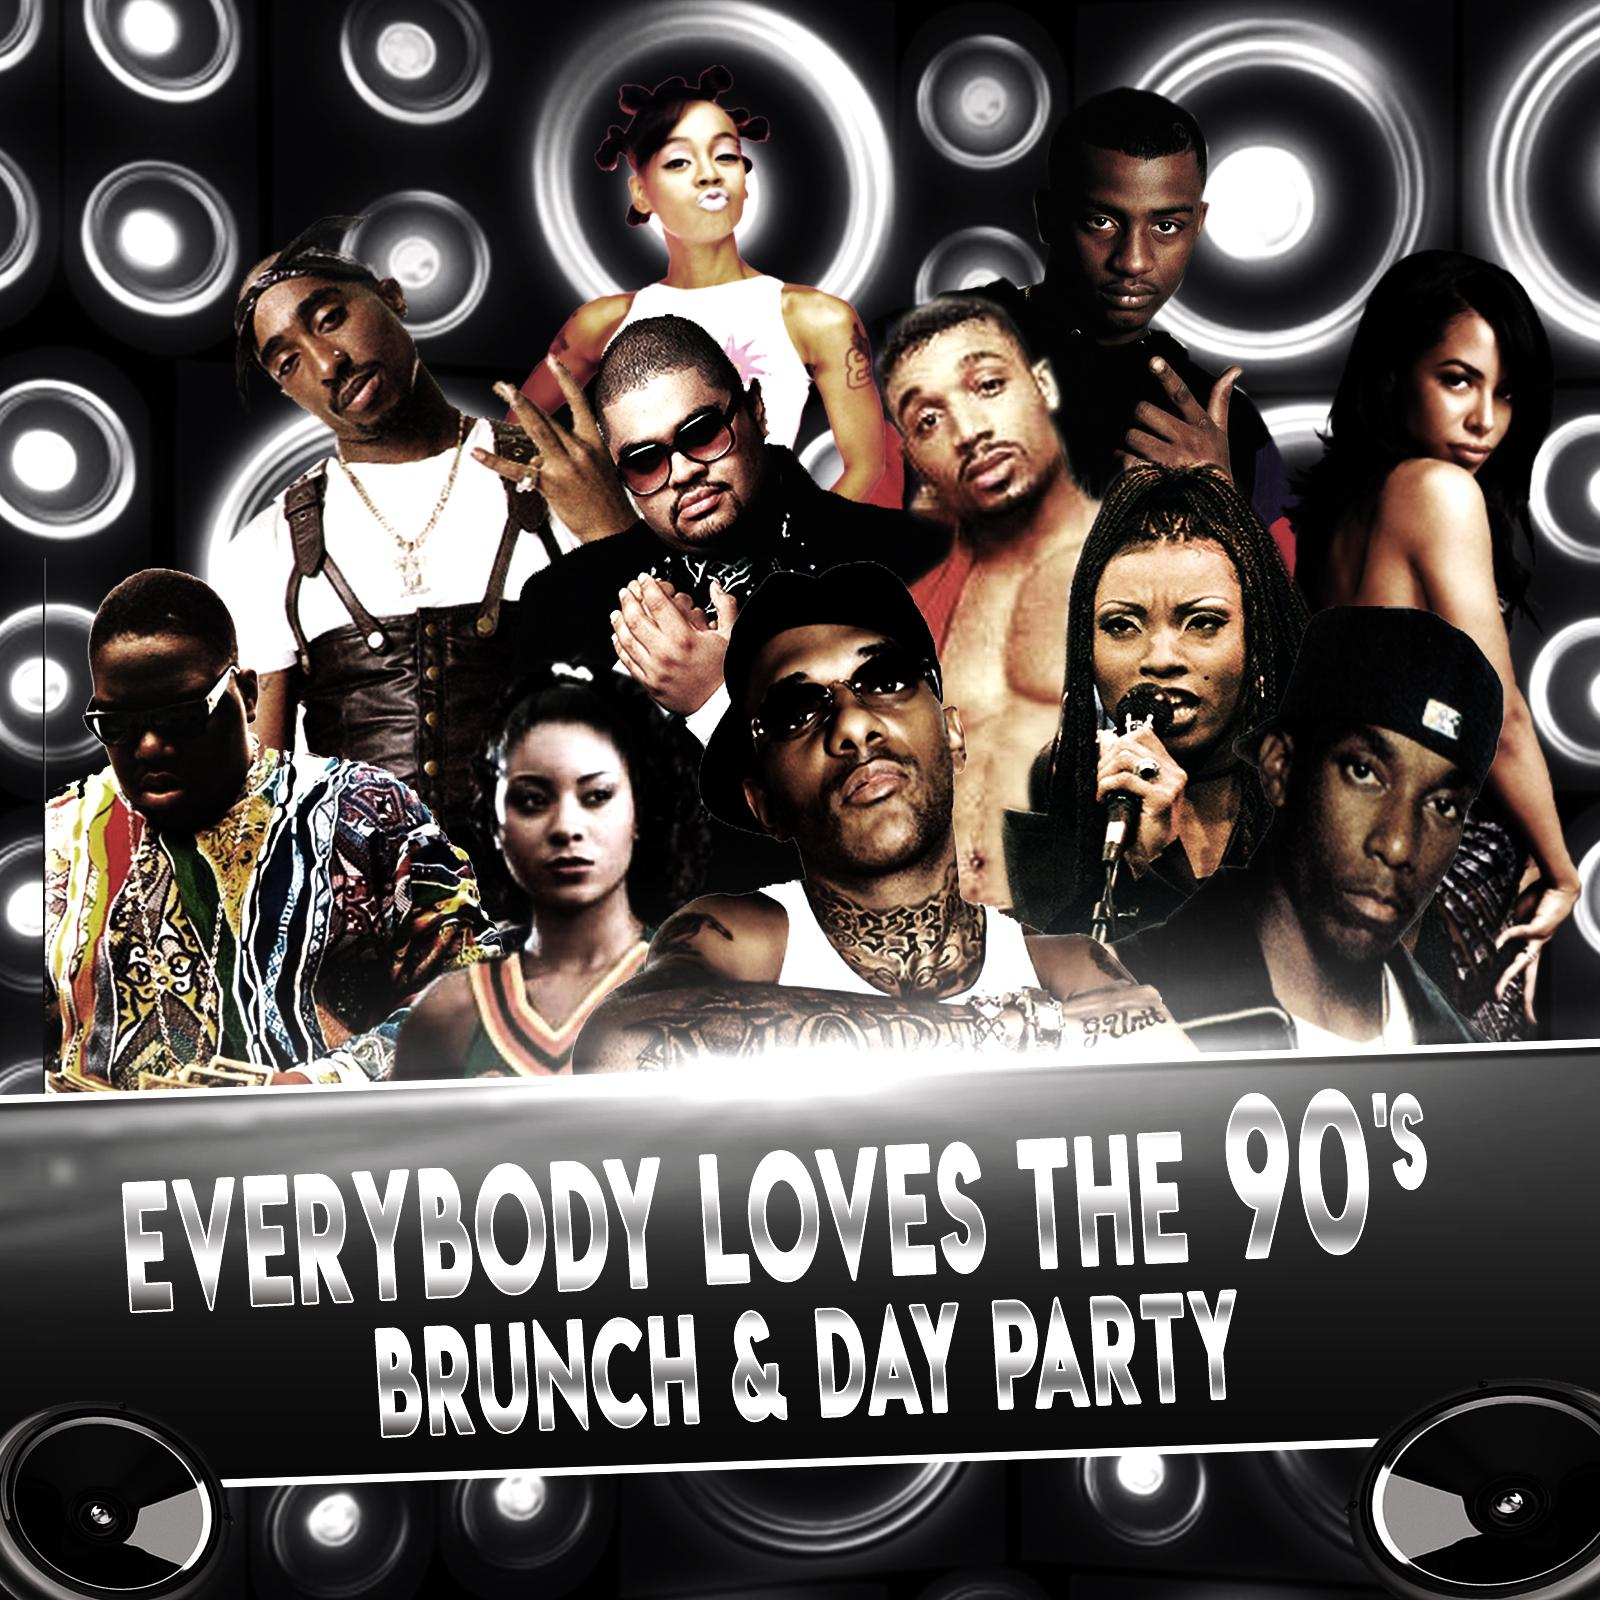 Everybody Loves The 90's - Brunch & Day Party - Bad Boy VS Death Row Edition. Everybody Loves The 90's - Brunch & Day Party - Bad Boy VS Death Row Edition